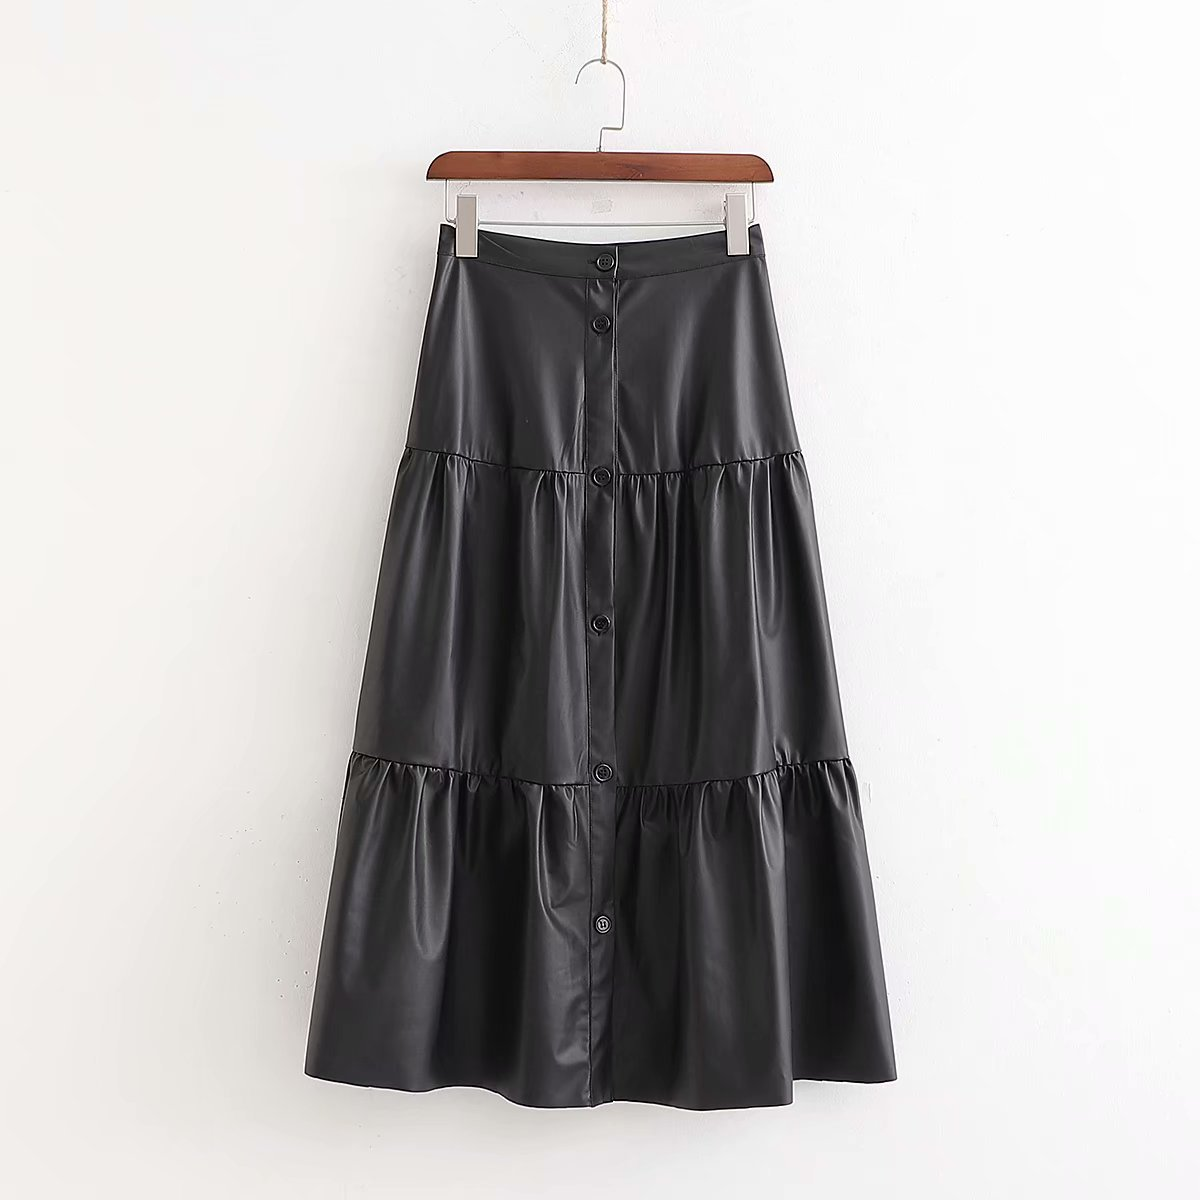 Women Chic Black PU Leather Midi Skirt Buttons High Waist Basic Female Casual Mid Calf Stylish Skirts Mujer